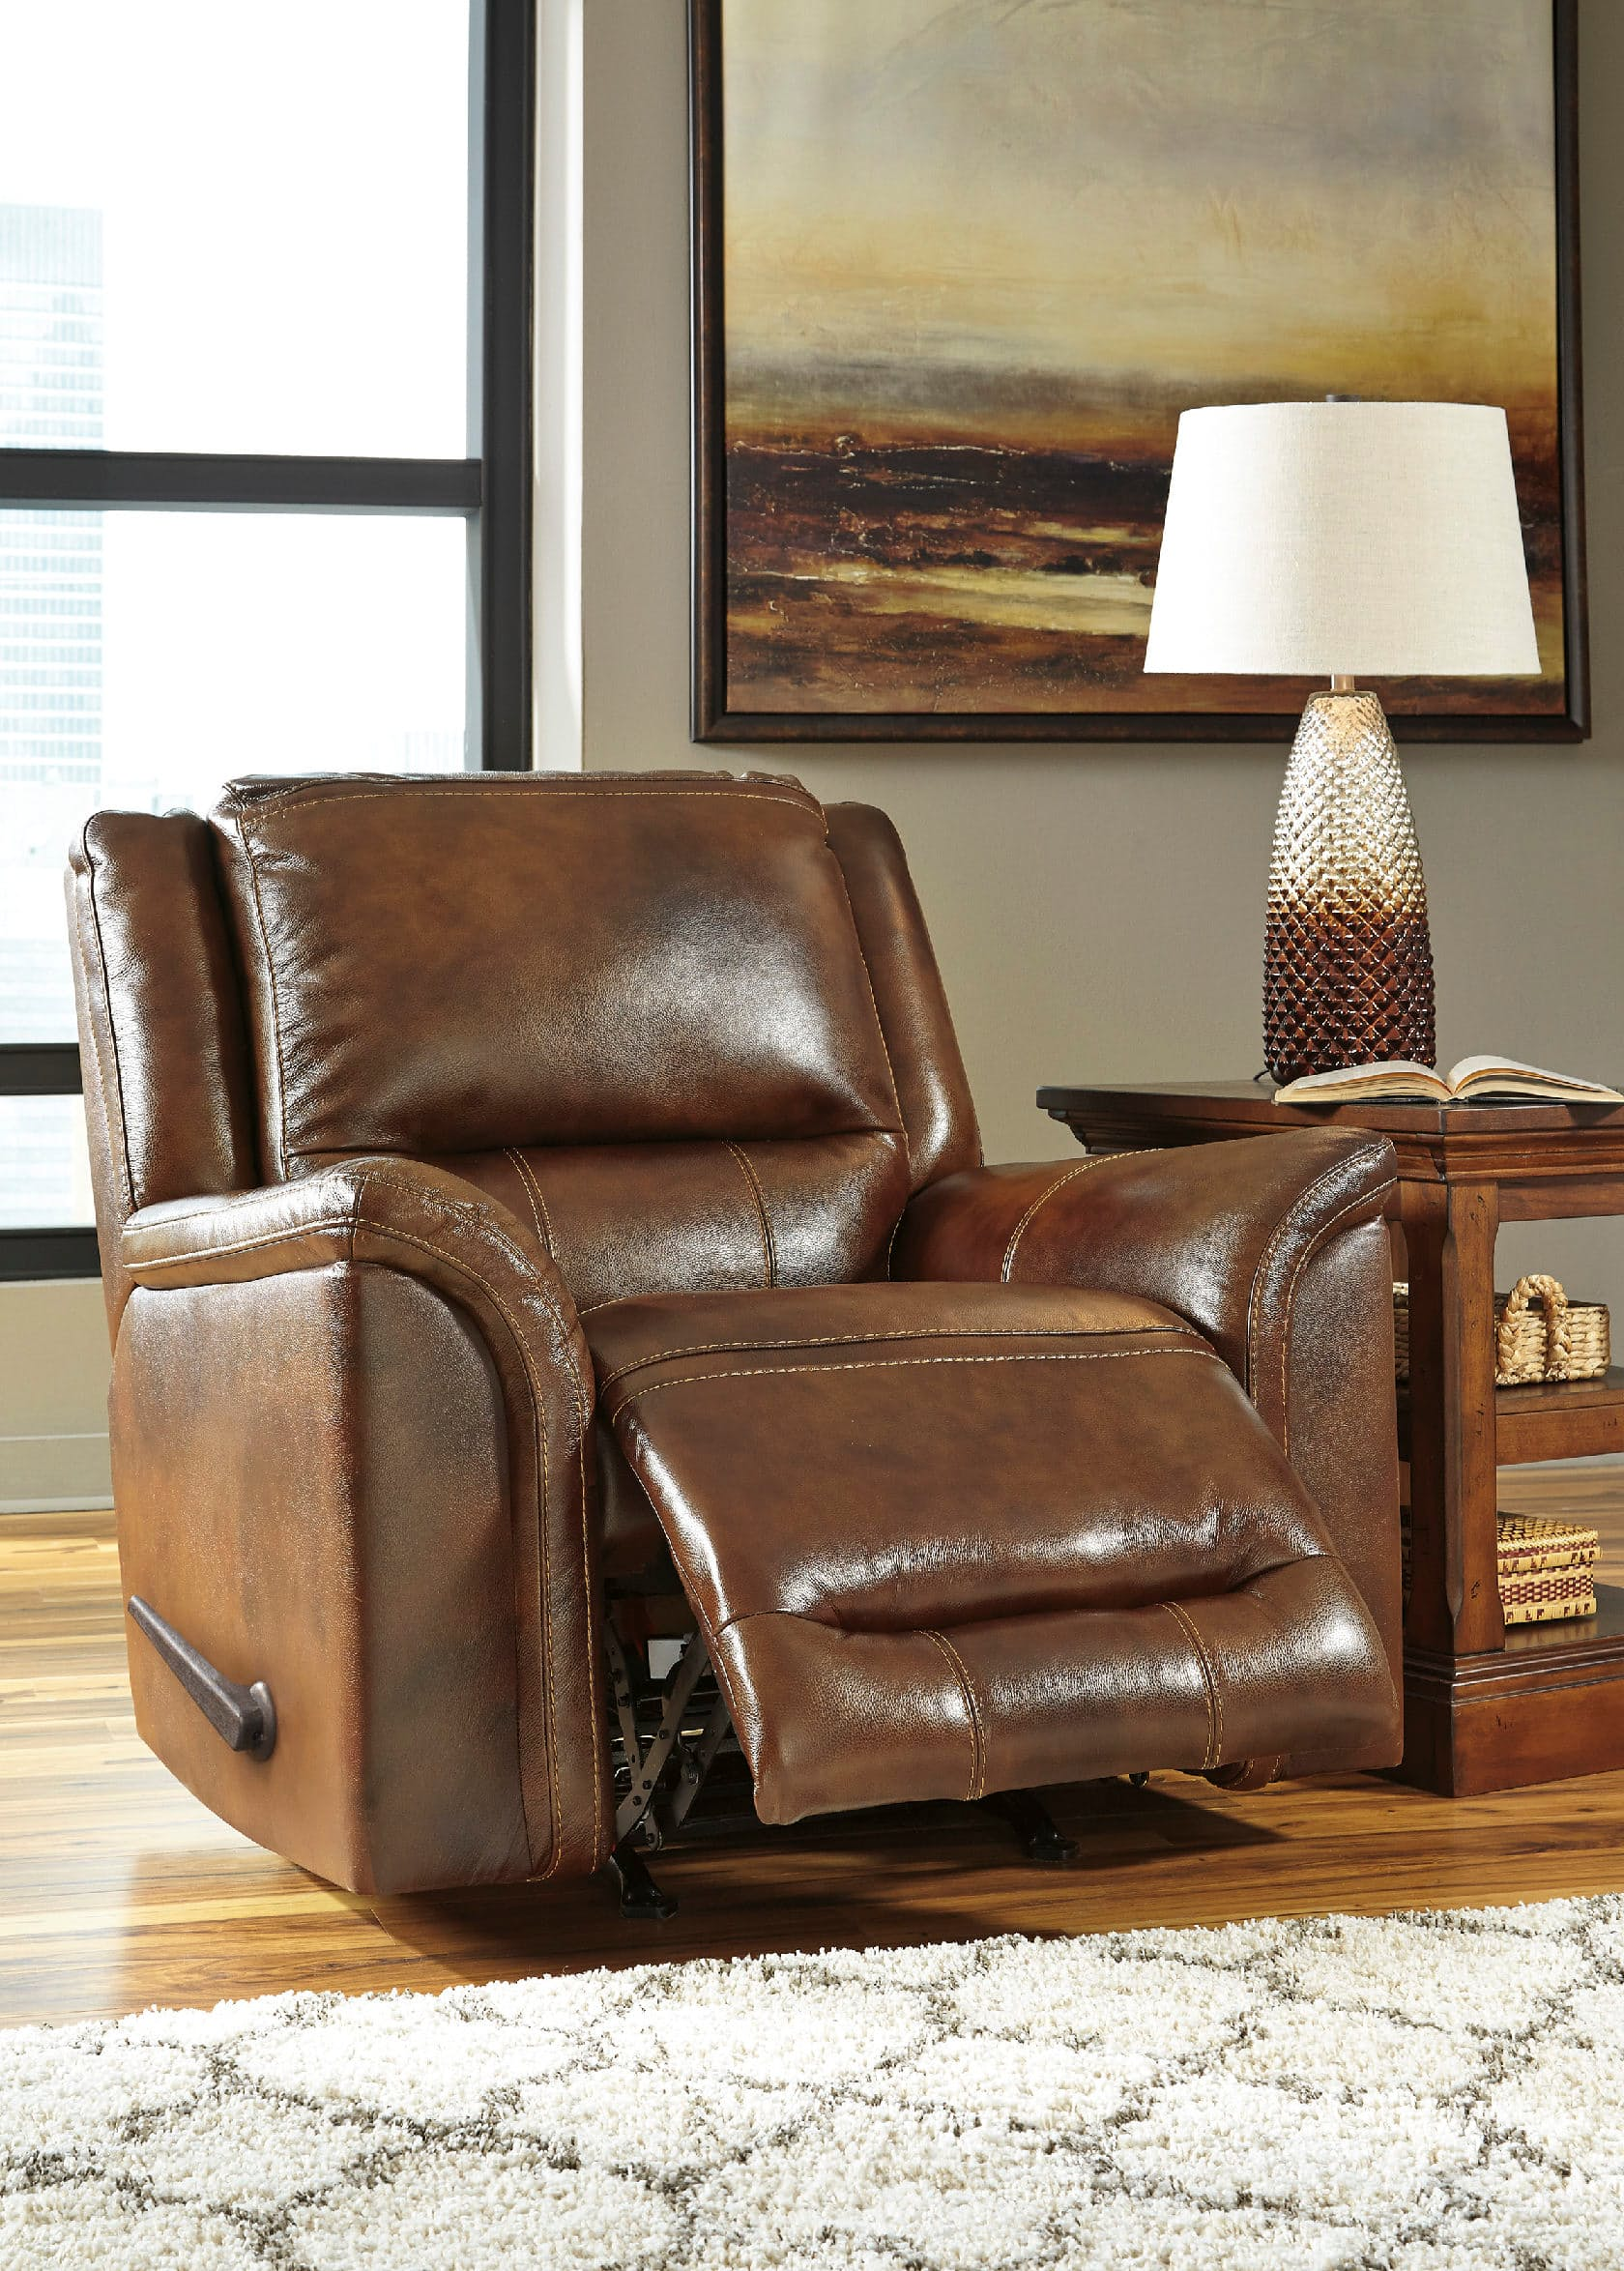 Ashley Furniture Portland | Ashley Furniture Louisville | Ashleys Furniture Store